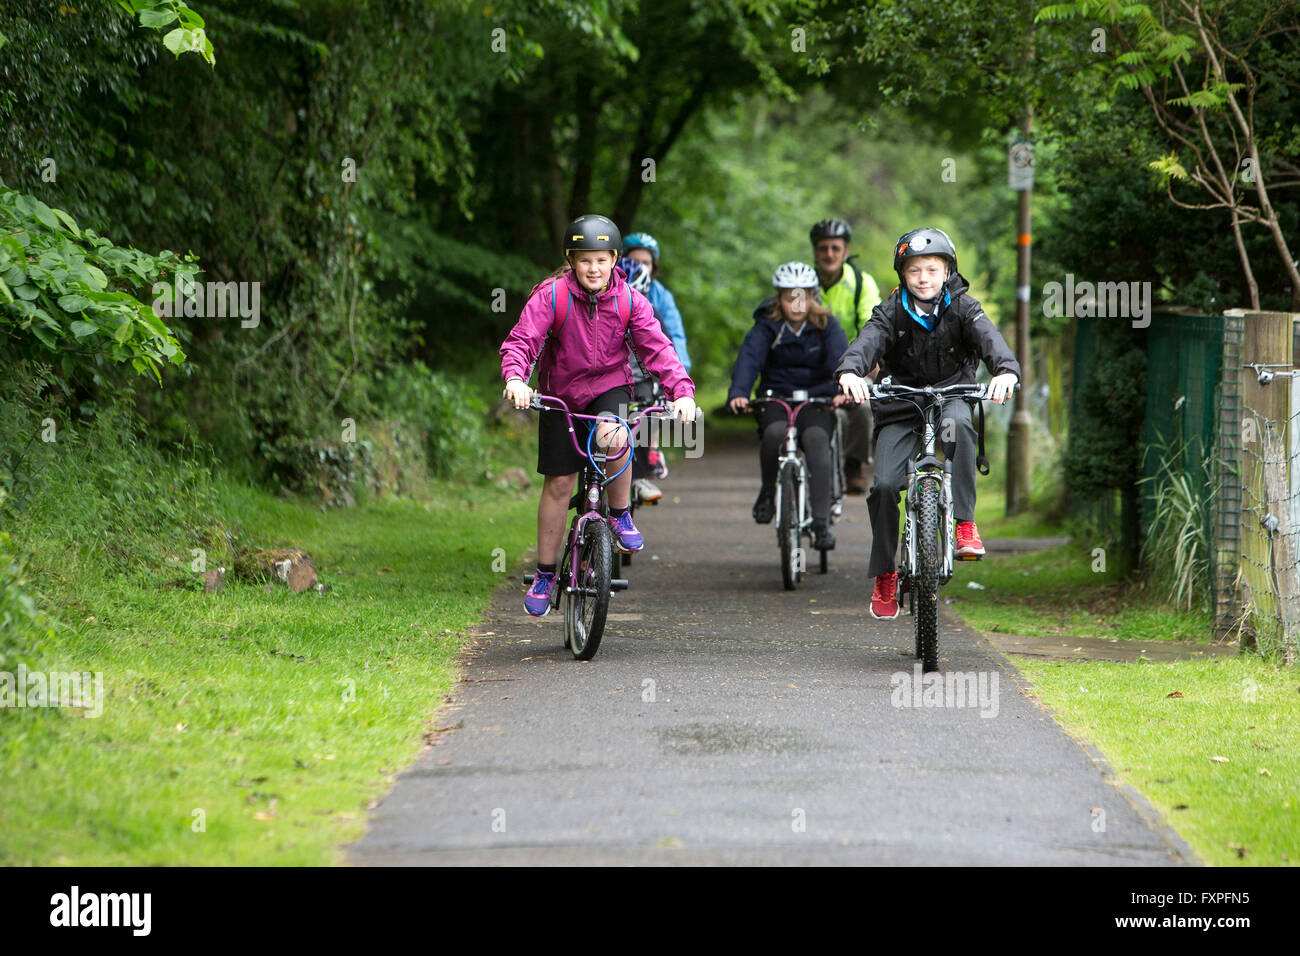 Children safely cycling to school with adult supervision on pathways - Stock Image